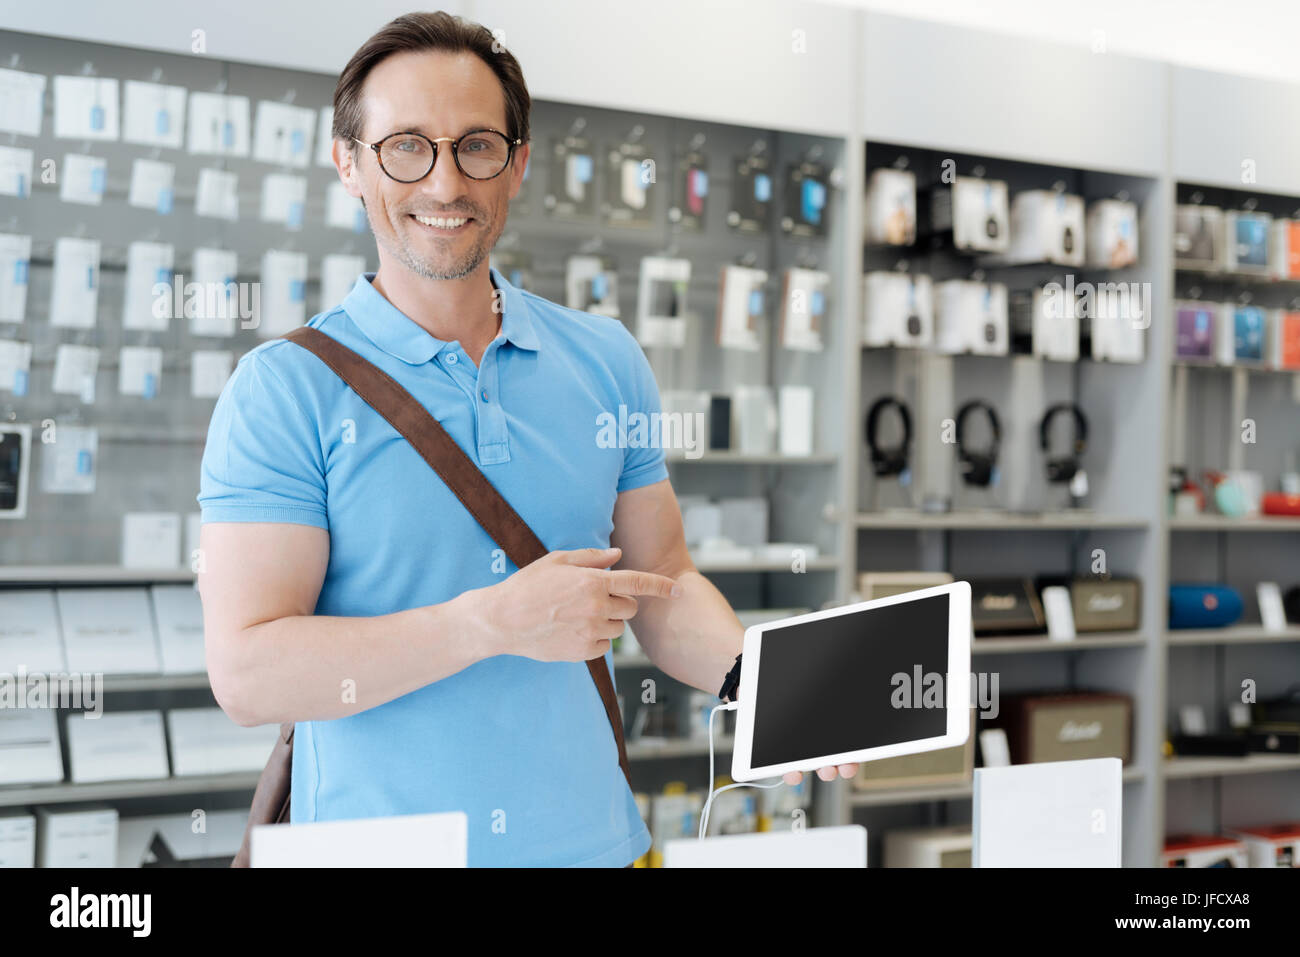 I finally found the perfect one. Busy adult man wearing glasses shopping for a new tablet and pointing his finger - Stock Image